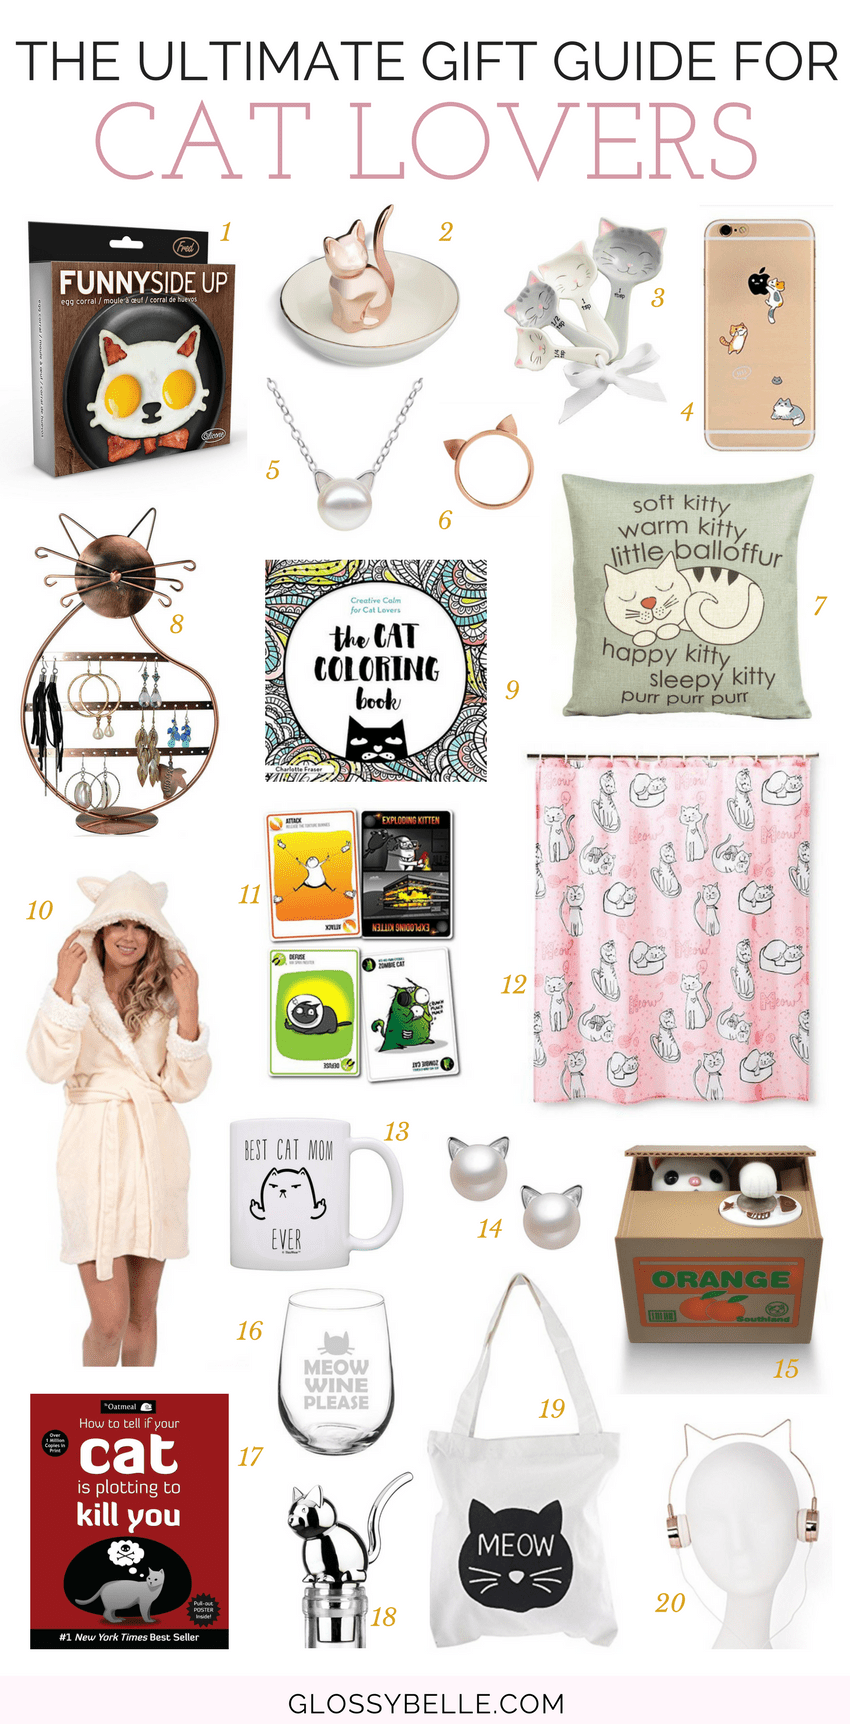 If you're looking for the purr-fect gift for any cat lovers in your life, what better way to show that you care about them than with cat-related presents!  Here are 20 awesome gift ideas you can consider getting them that they'll love. | gift guide | holiday gift guide | cat lover | kitty | kitty lover | gifts | presents | cat jewelry | cat presents | cat mama | cat mom #giftguide #christmasgifts #giftideas #holidaygifts #catlovers #cats